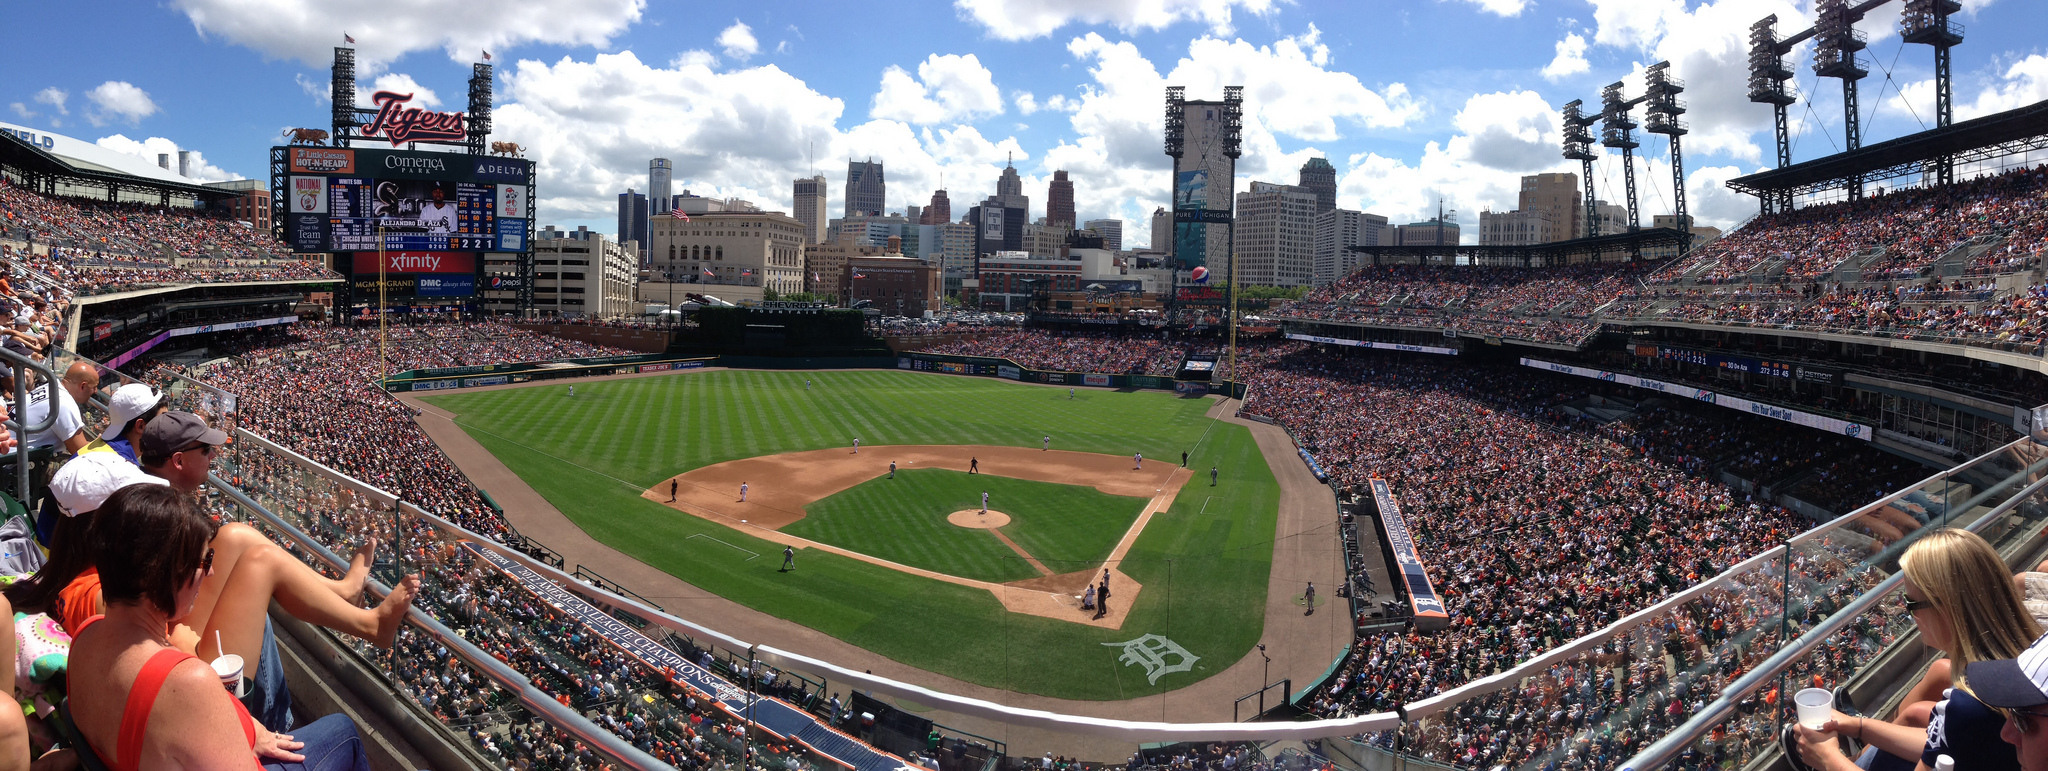 """Comerica Park, Detroit"" by Mike Boening via Flickr Creative Commons"